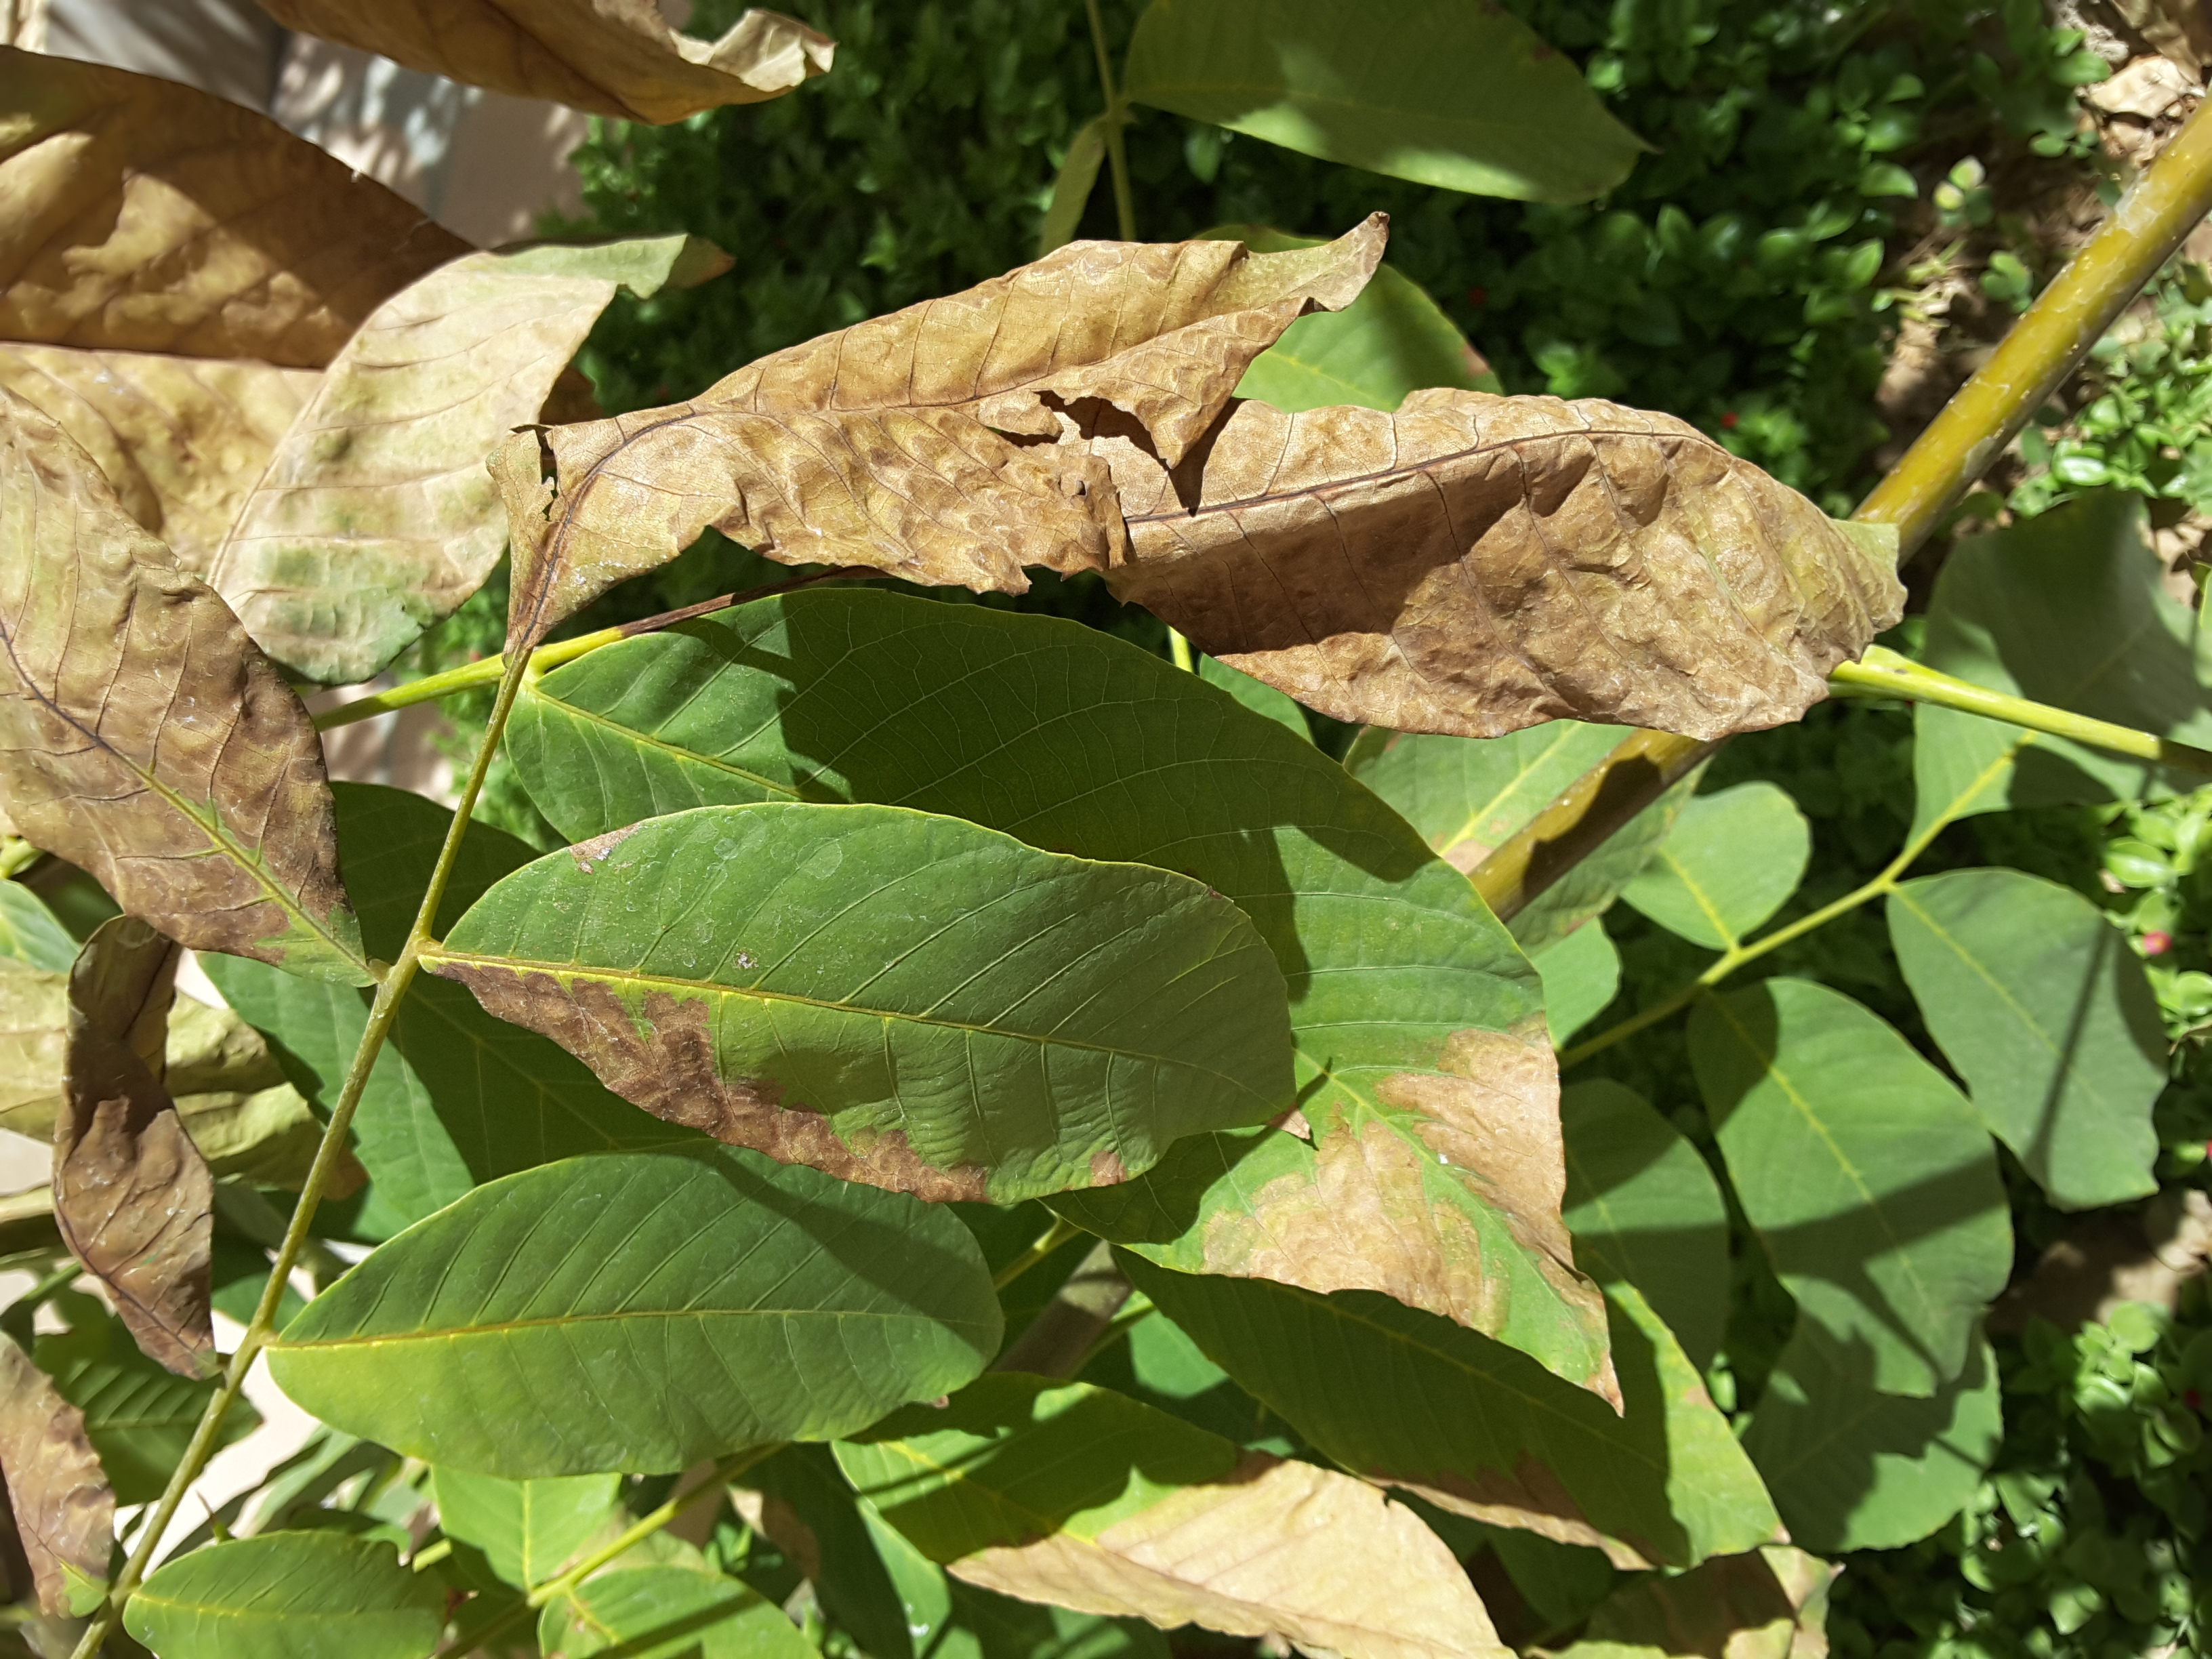 My walnut tree leaves dry on tree